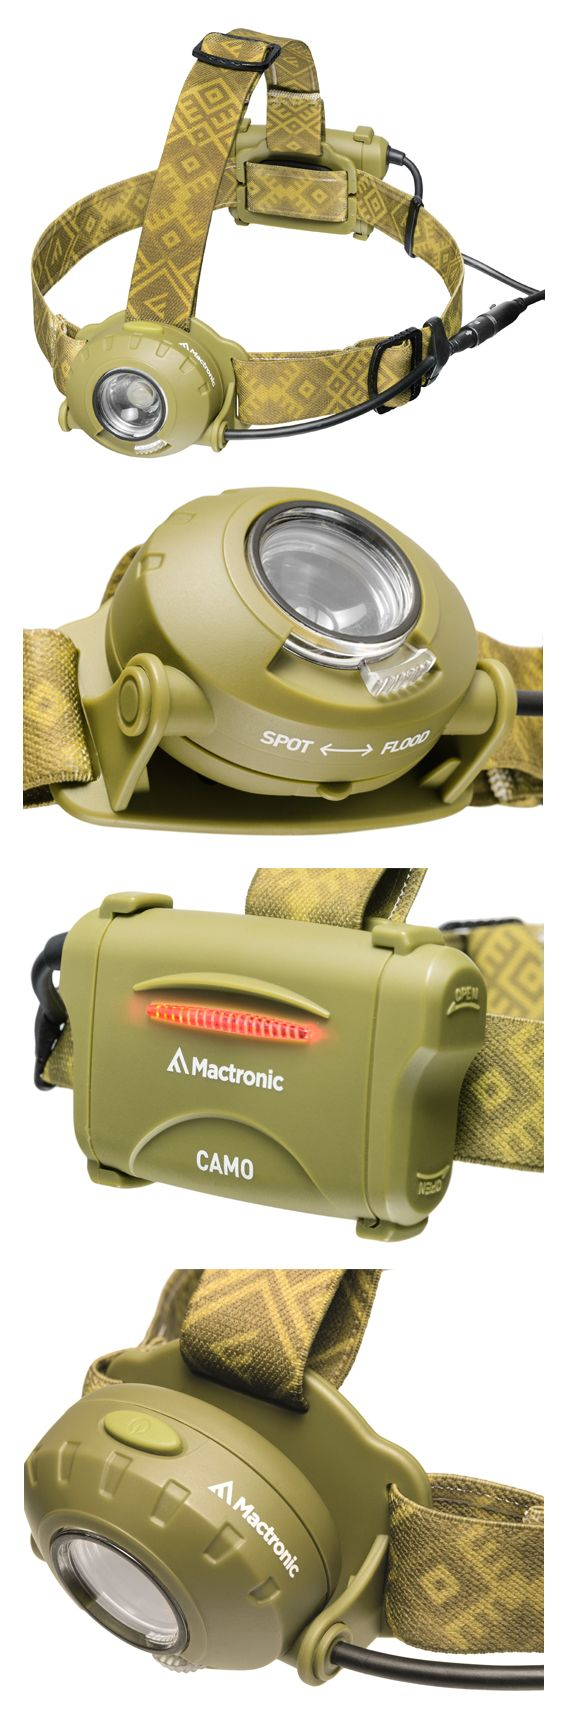 The CAMO headlamp is a choosy camper's capable companion with its choice of a flood beam to illuminate the whole campground or a spot beam to traverse the most treacherous trails. The adjustable head aims the Camo's 300 lms up to 190 meters. A red LED in the Camo's battery case makes your presence known to fellow travelers behind you. The Camo doesn't hide from dust, dirt, mud and rain with an IPX4 water resistant rating and impact proof for a meter drop.